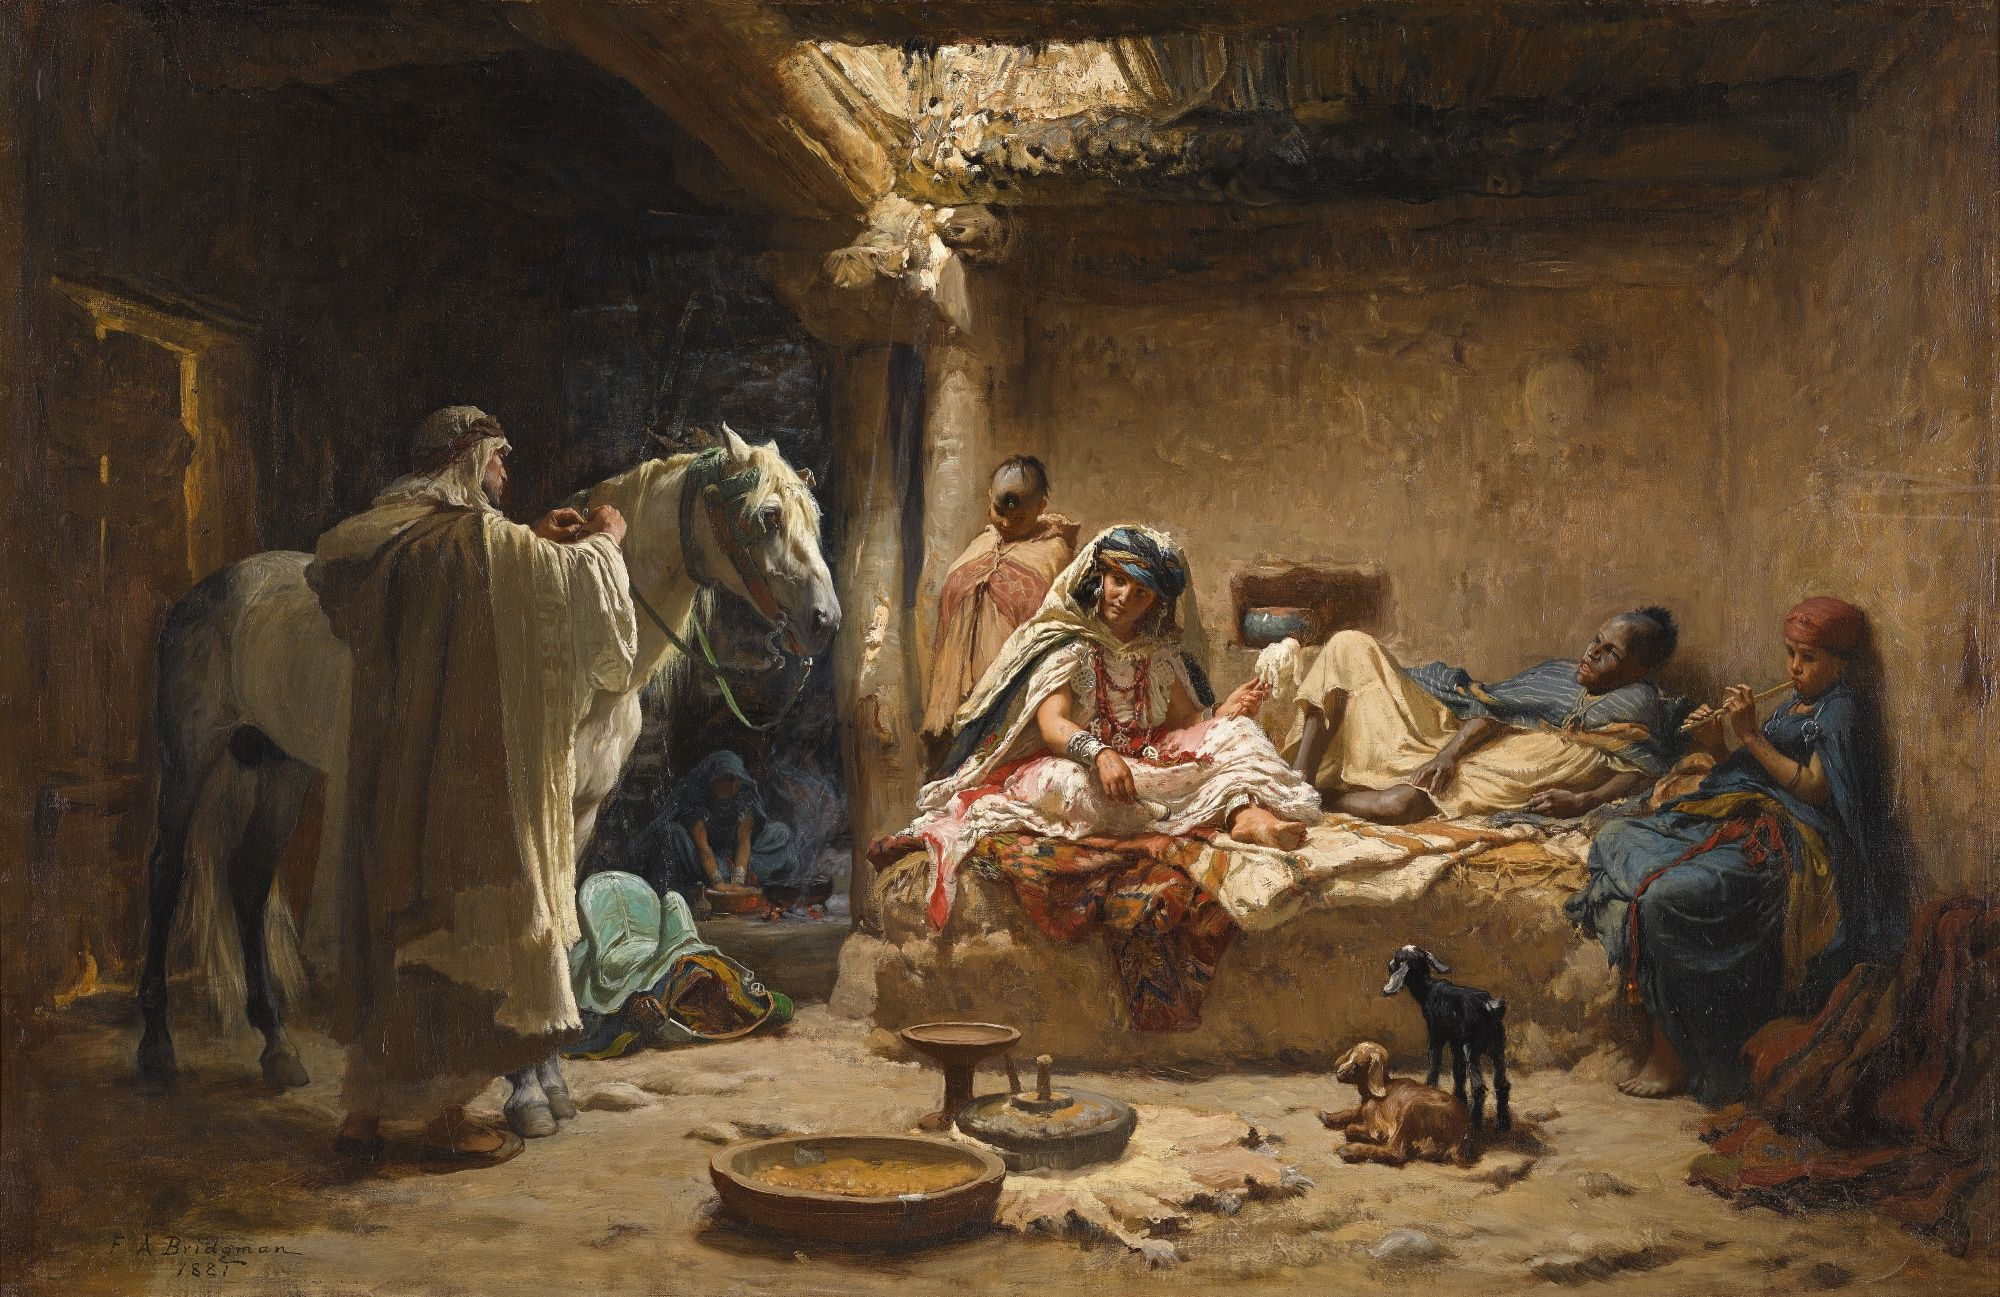 BY THE CITY GATE ARAB HORSES ORIENTALIST PAINTING BY FREDERICK BRIDGMAN REPRO